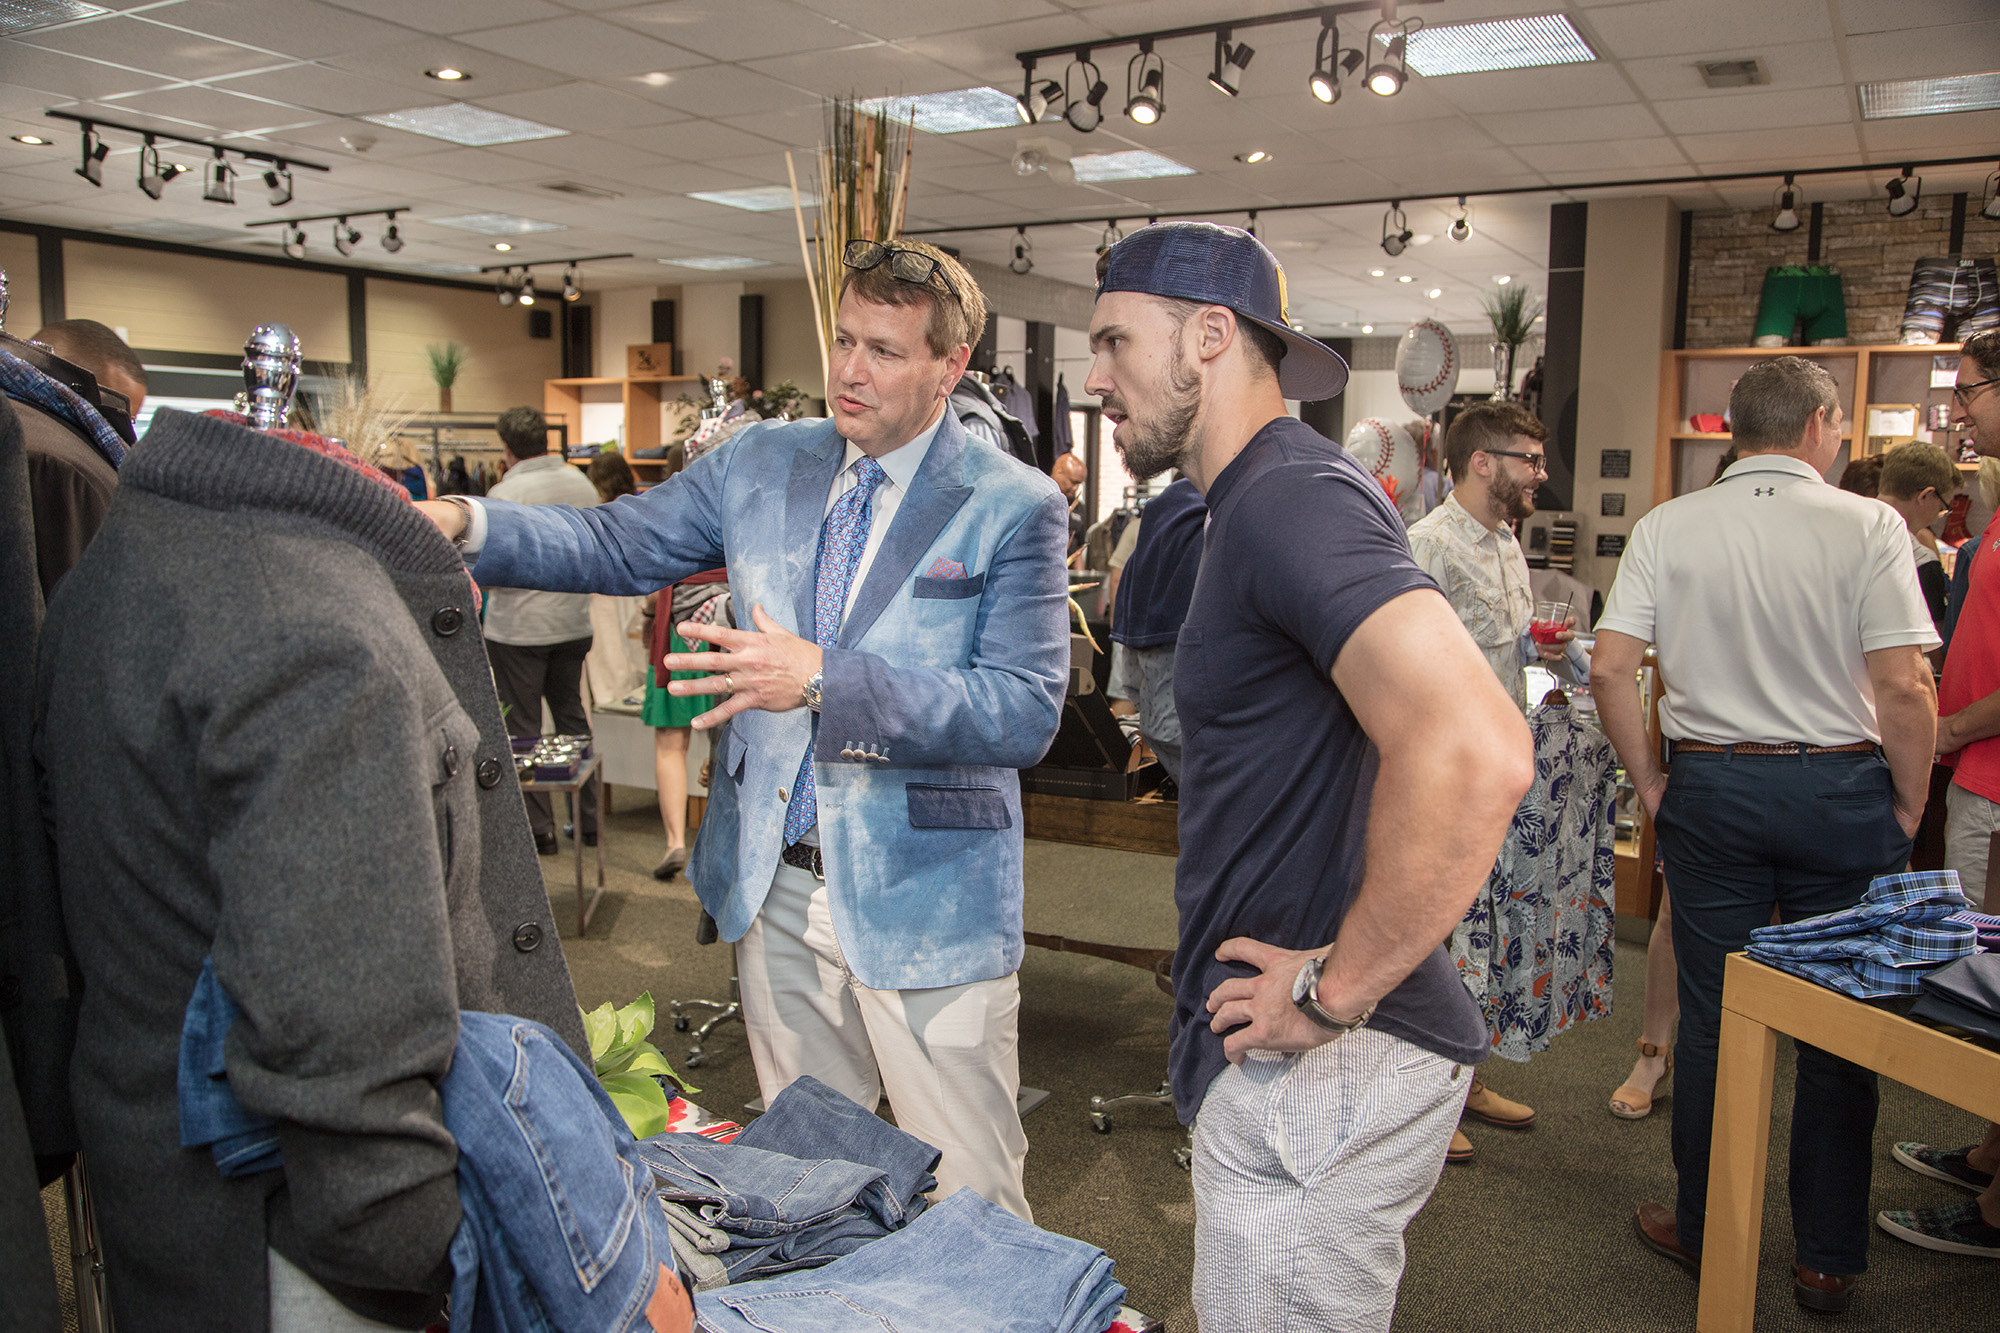 Blaines JDRF event photos 07-22-17 (1 of 1)-175.jpg